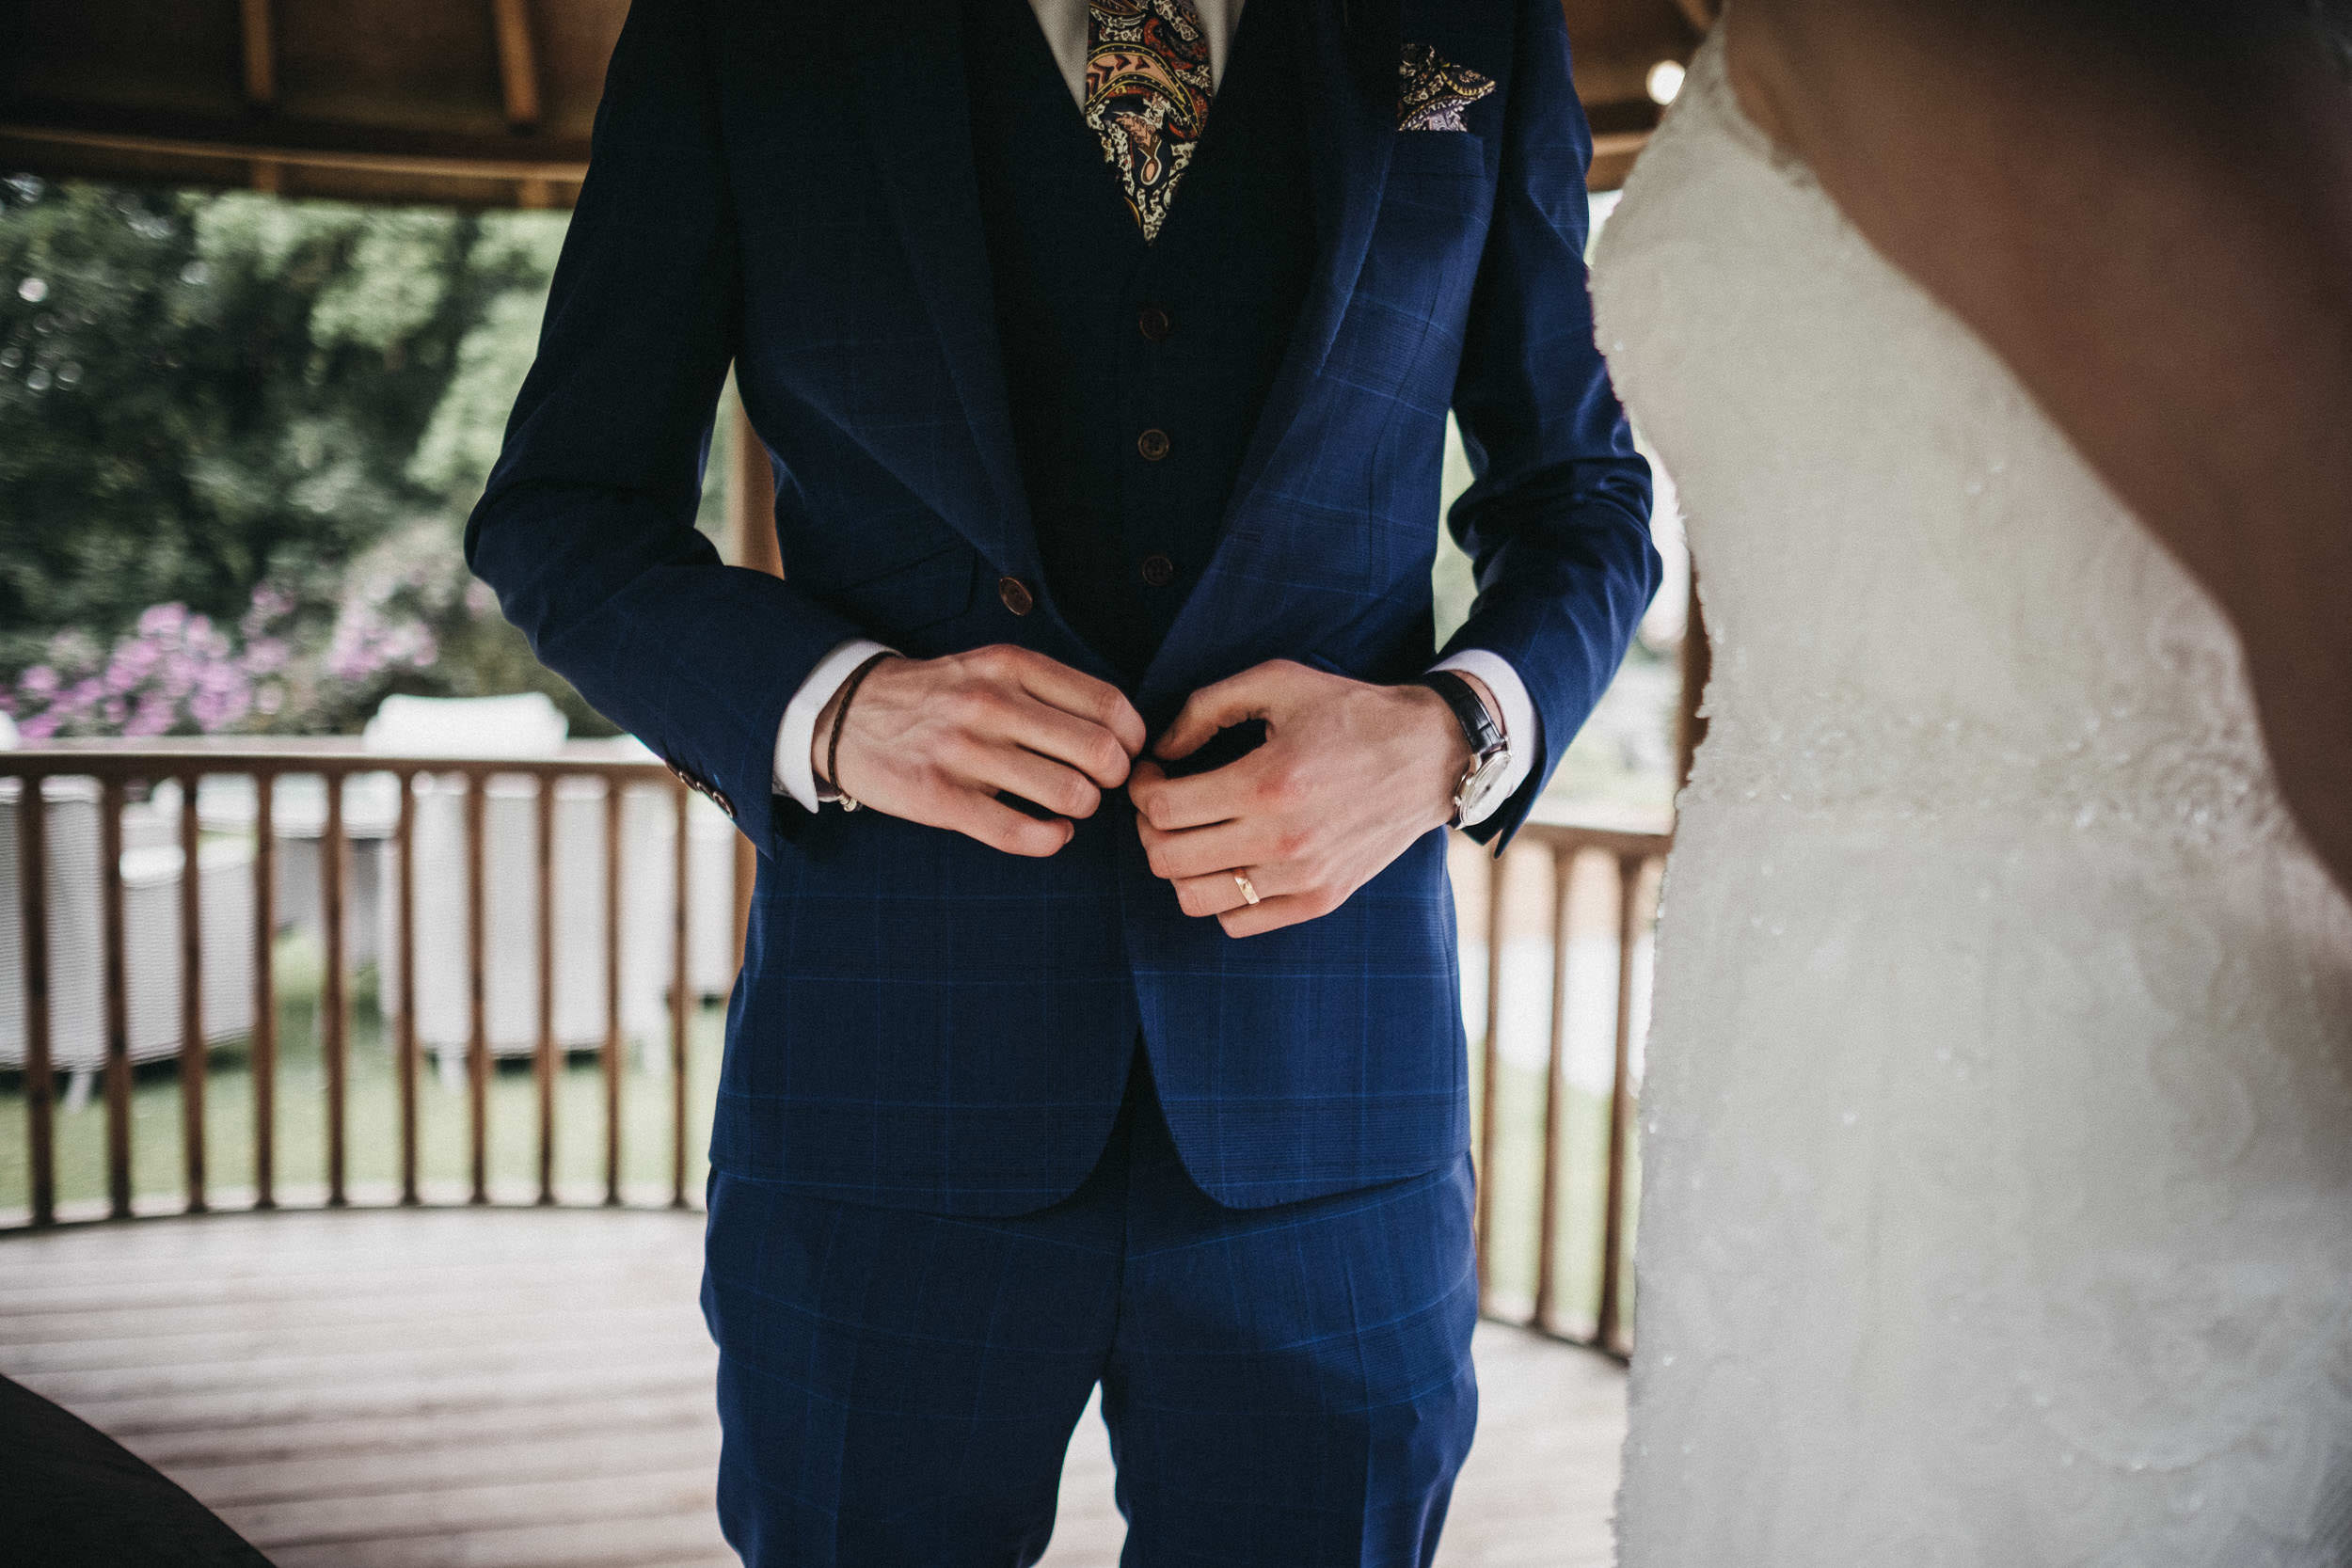 Close up of groom details - tie, pocket square, watch and ring